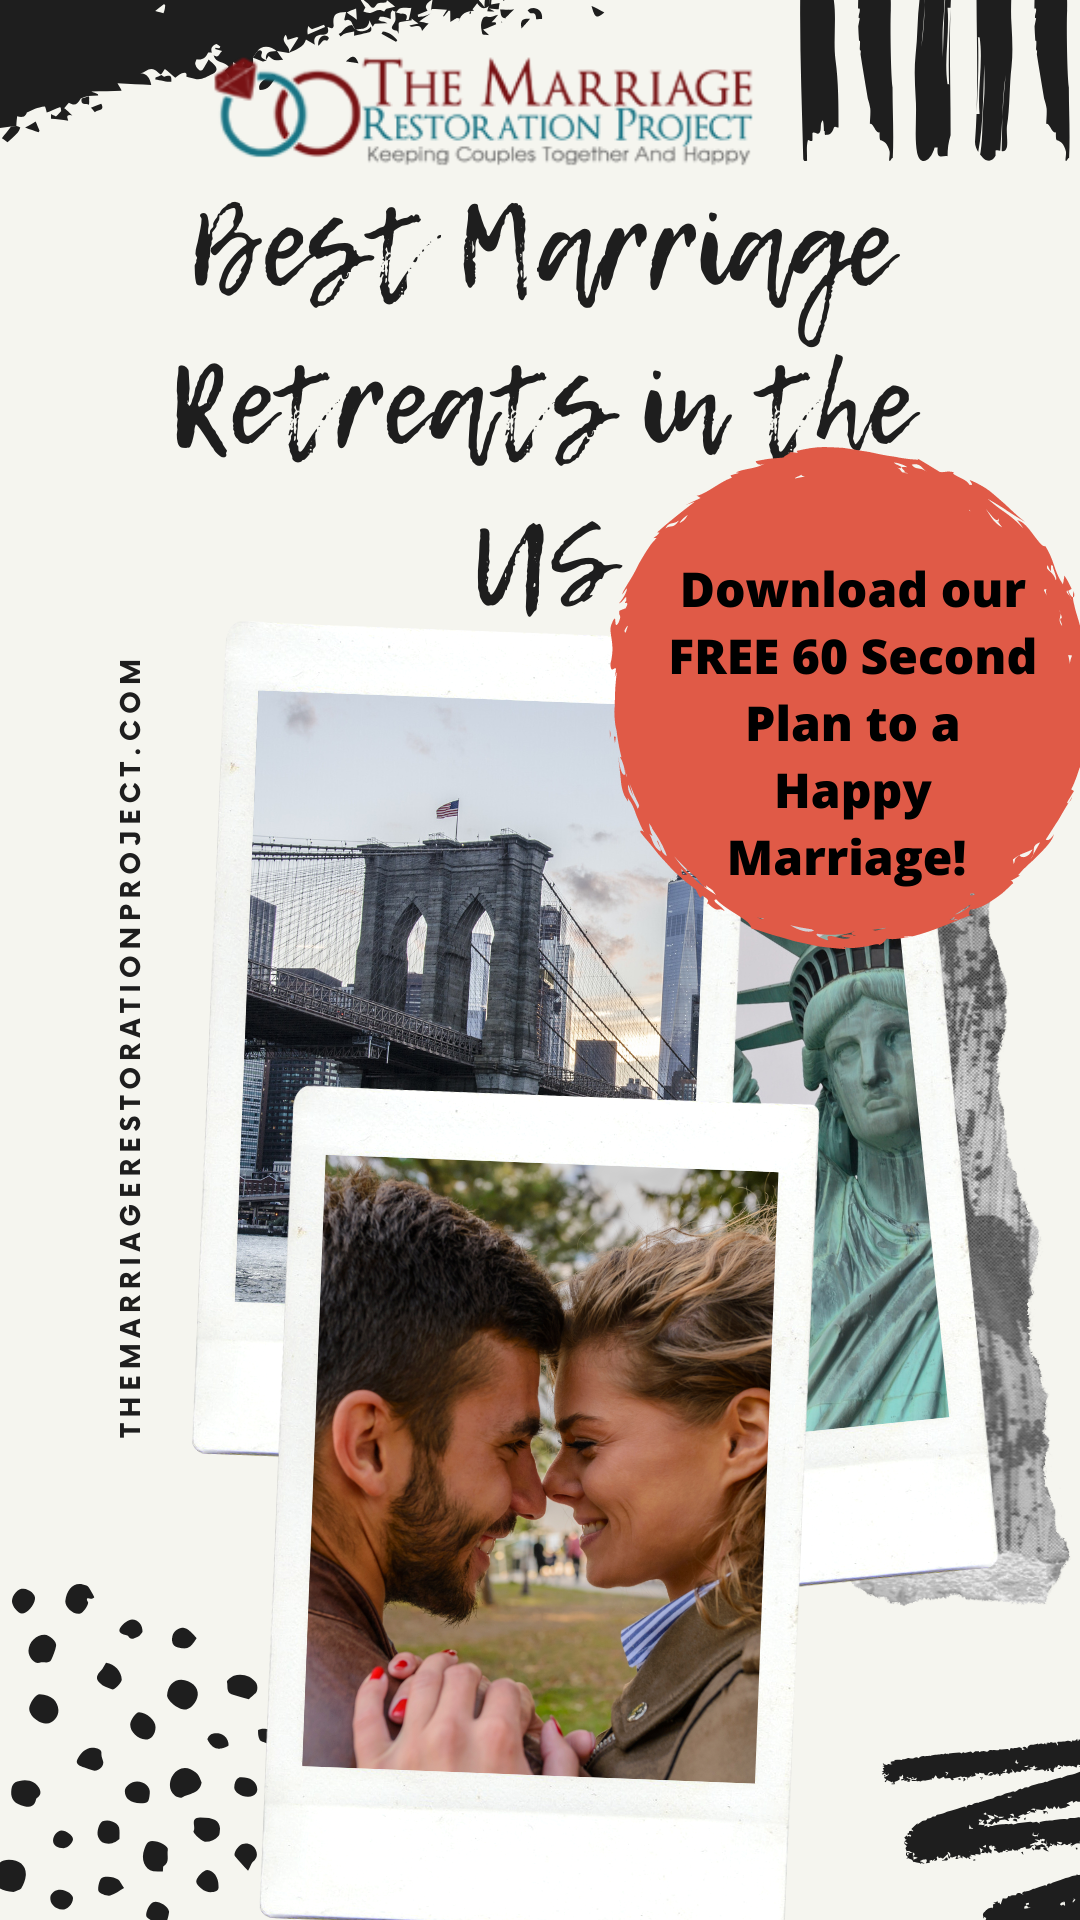 Imago Weekend Marriage Retreat Group Couples Therapy Workshop Online In 2020 Marriage Retreats Marriage Restoration Couples Therapy